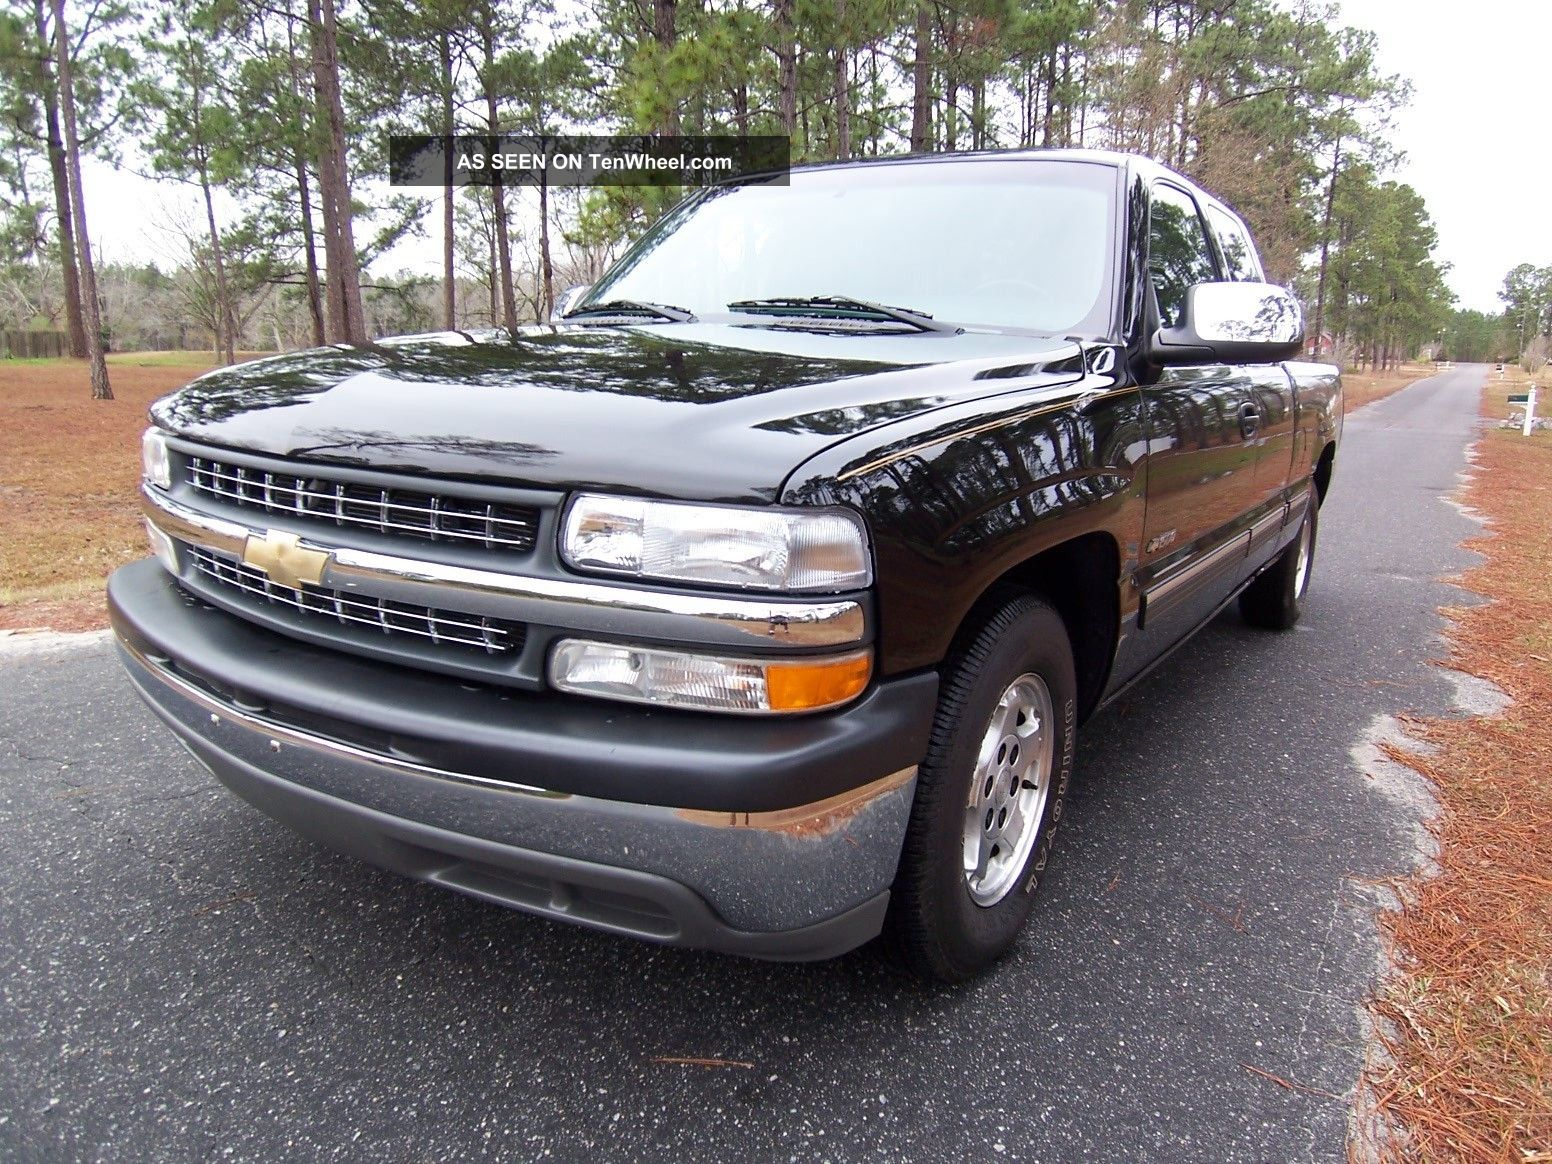 2002 chevrolet silverado 1500 ls ext cab v 8 90k excellent throughout. Black Bedroom Furniture Sets. Home Design Ideas